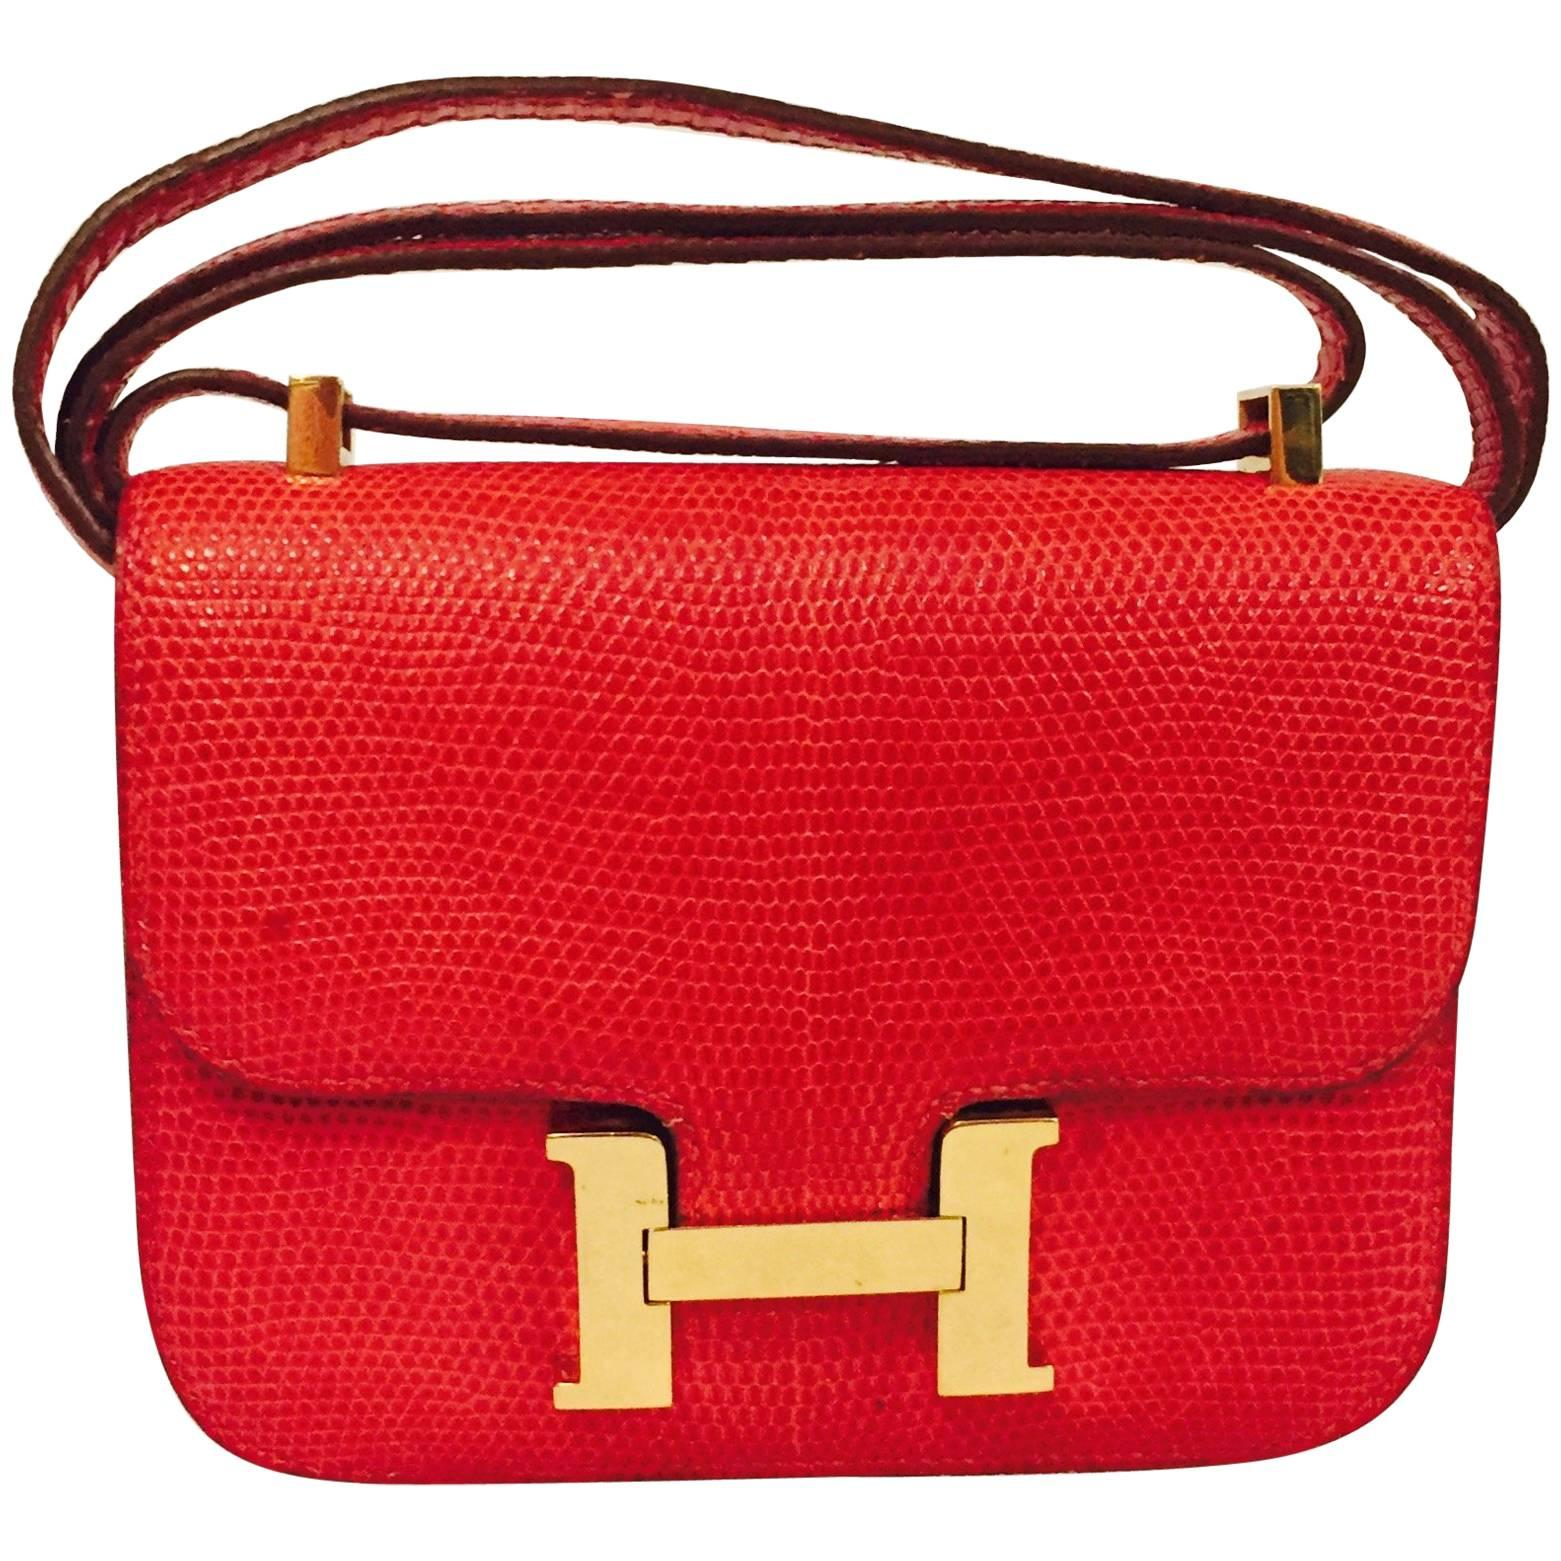 aa393ea49f0 ... blanc casse d3ca4 1a589; promo code for true heritage hermes constance  red lizard micro shoulder bag for sale f4aae a1f1e